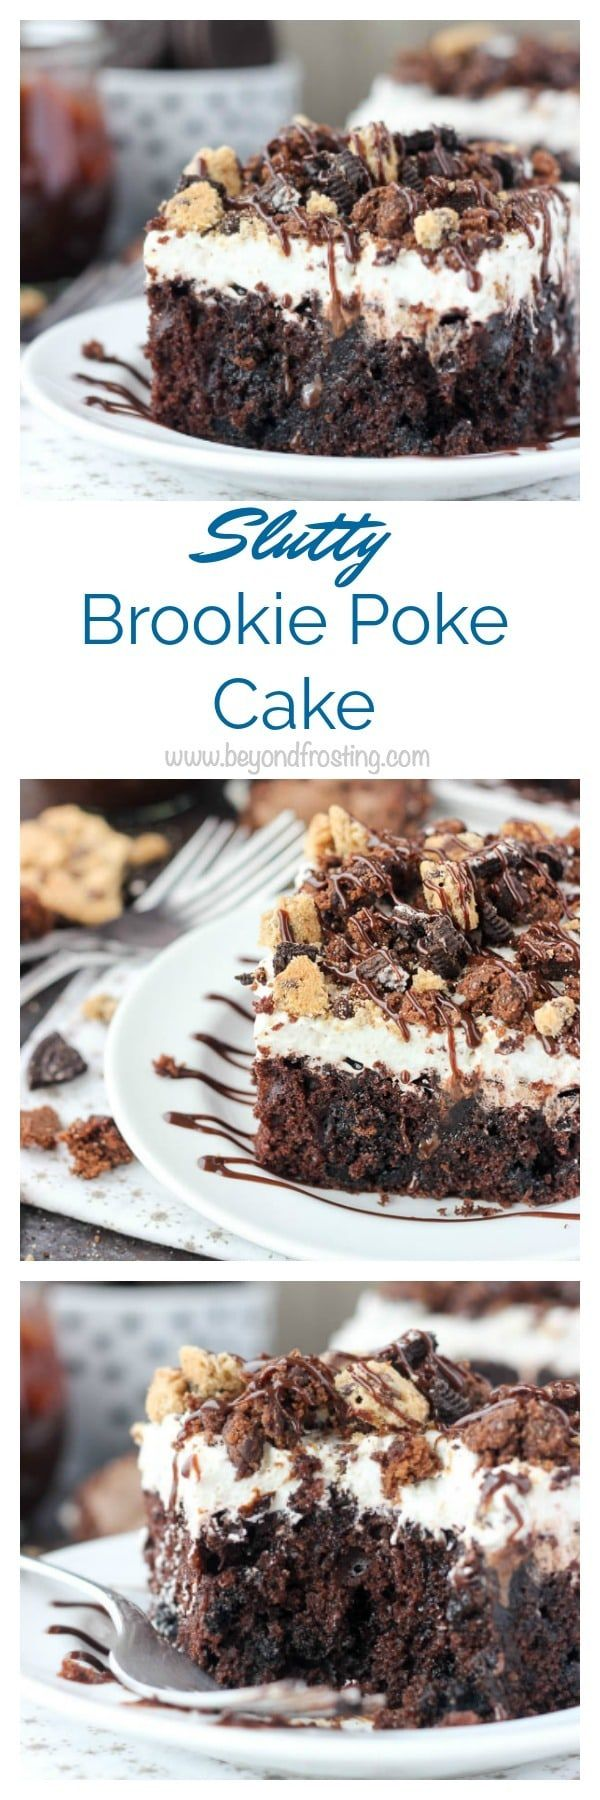 The best of all worlds, this Slutty Brookie Poke Cake is a chocolate cake filled with chocolate pudding, topped with whipped cream and crush Oreos, Brownies and Chocolate Chip Cookies.(Chocolate Pudding)